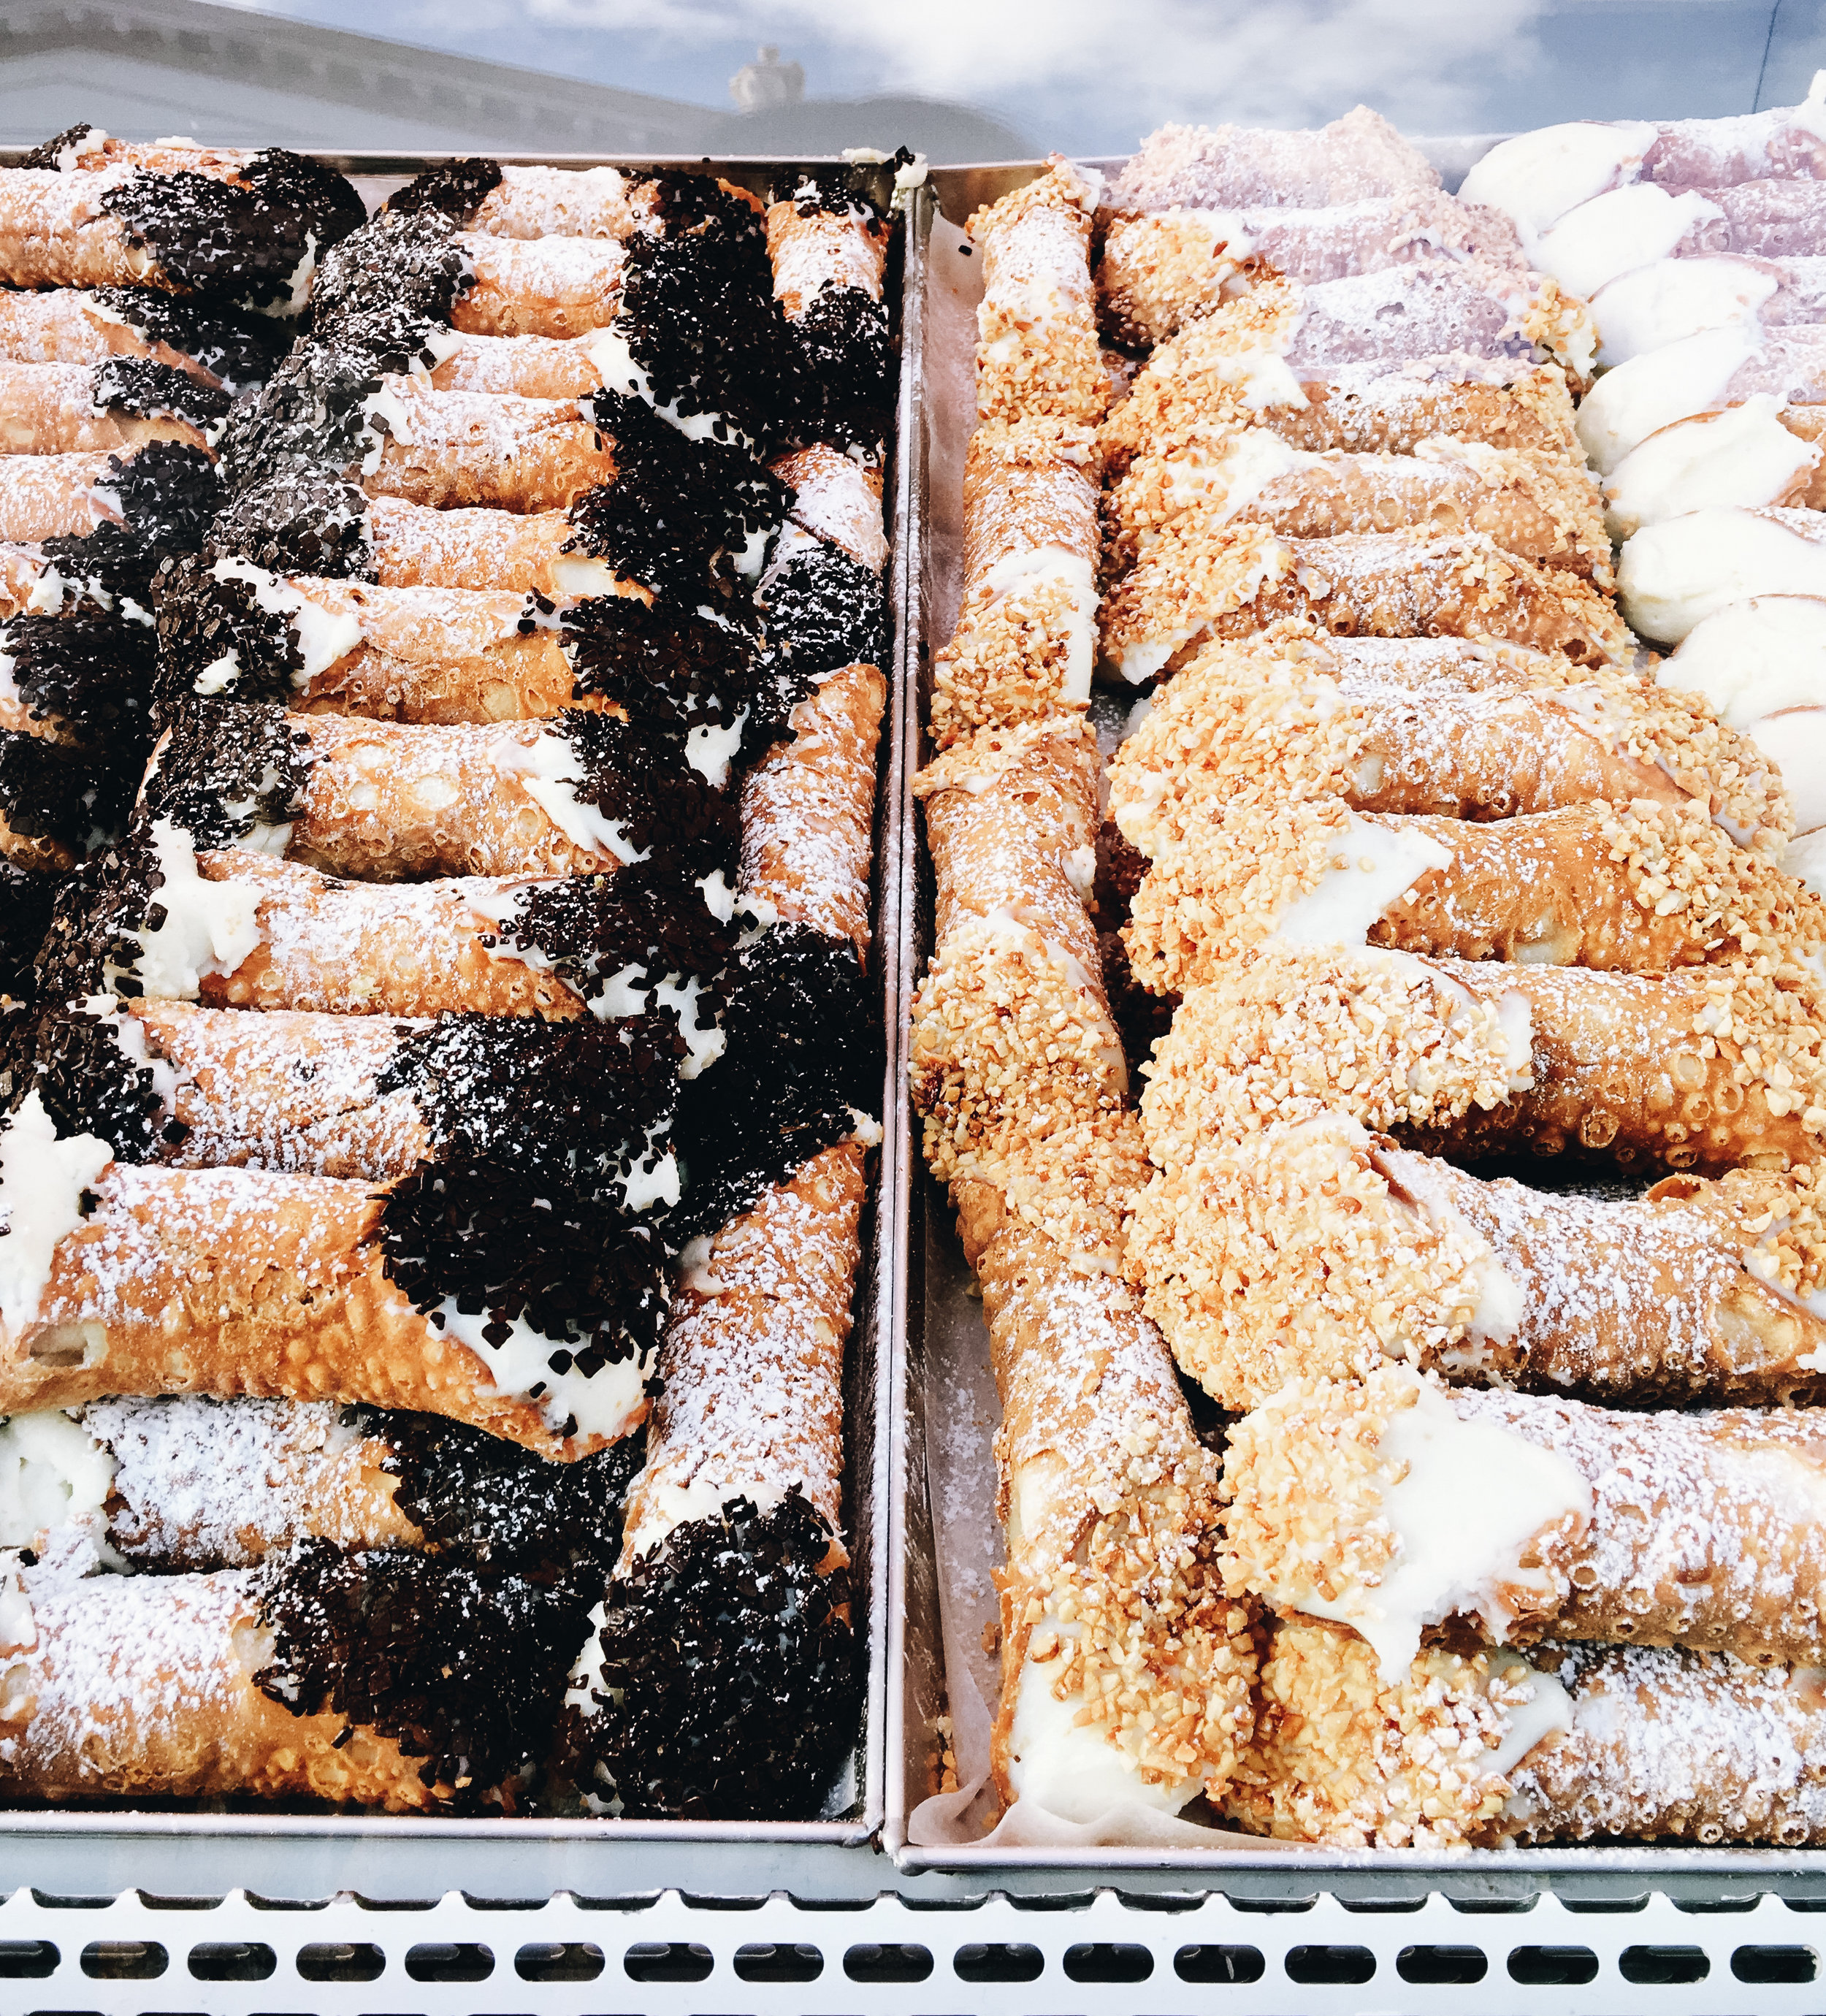 Cannoli Veneto, Italy | Freckle & Fair